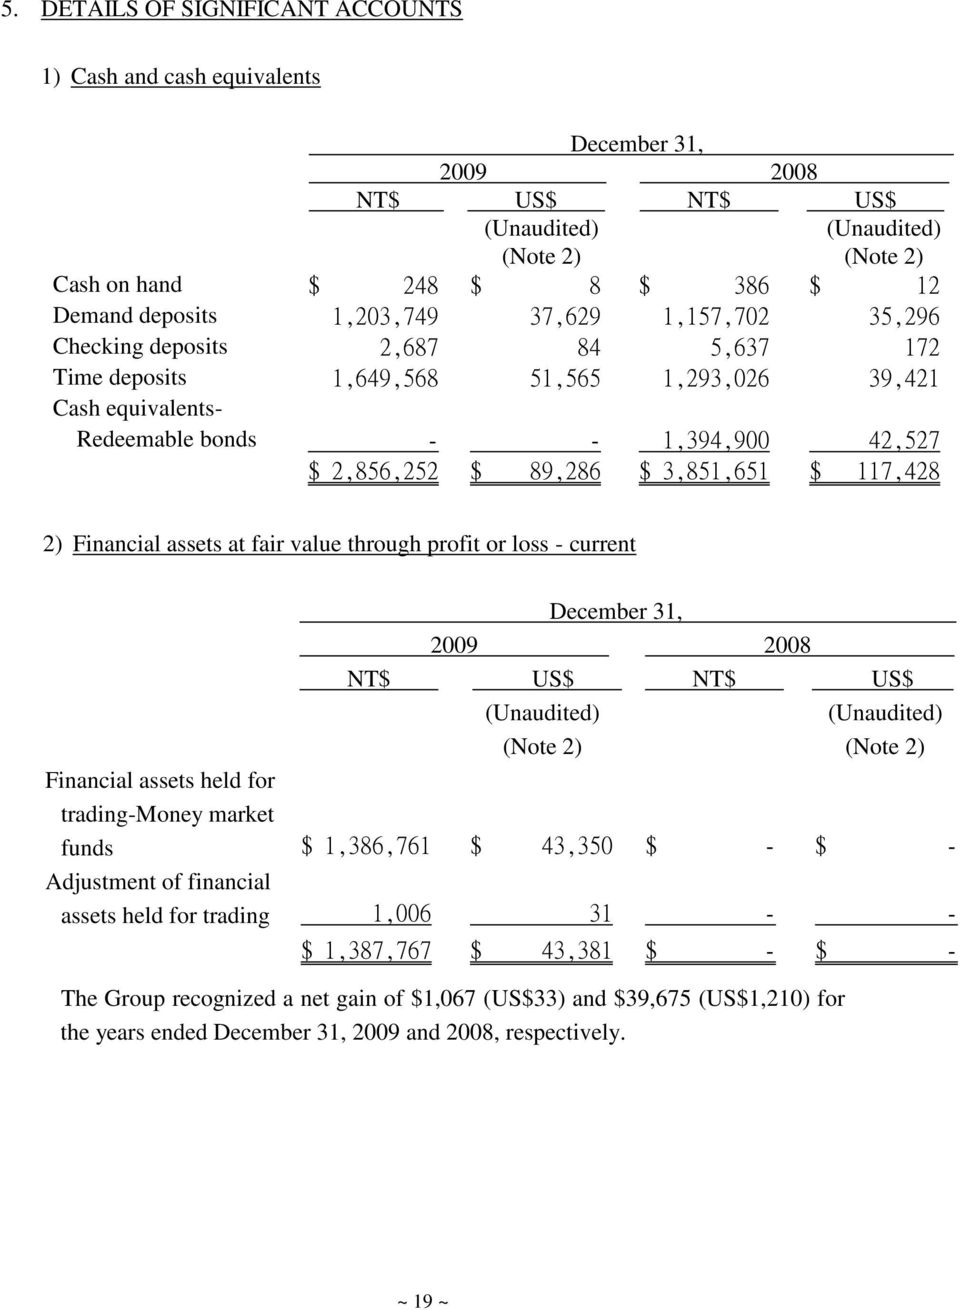 3,851,651 $ 117,428 2) Financial assets at fair value through profit or loss - current December 31, 2009 2008 NT$ US$ NT$ US$ (Unaudited) (Note 2) (Unaudited) (Note 2) Financial assets held for